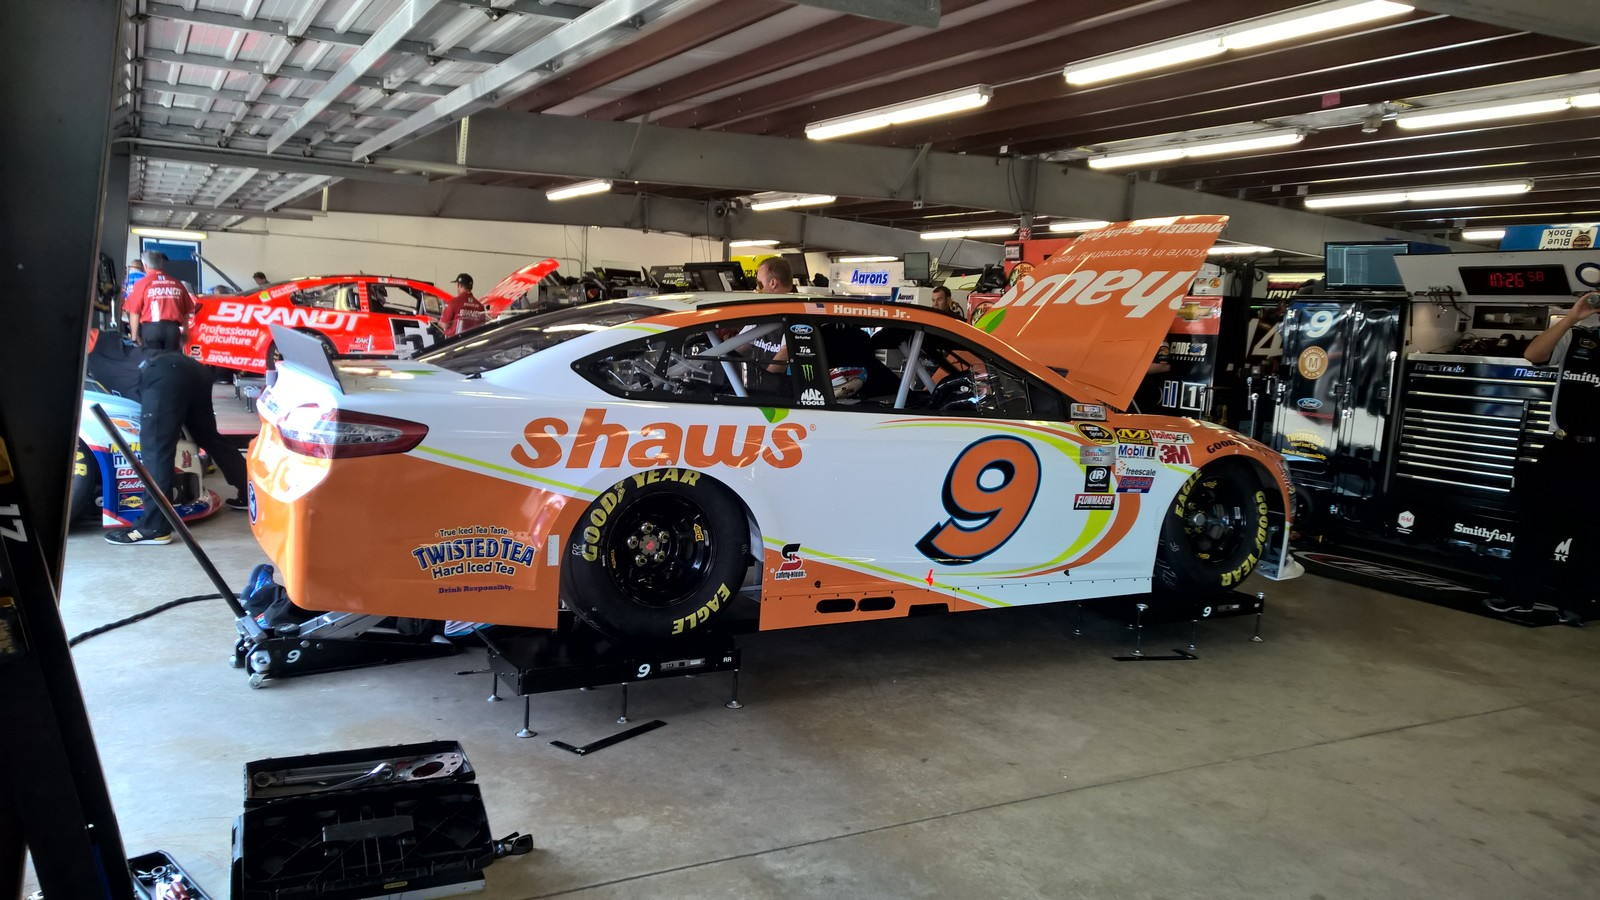 The #9 crew prepping the Shaw's Supermarkets Ford Fusion for an upcoming practice session at New Hampshire Motor Speedway on July 17th, 2015.